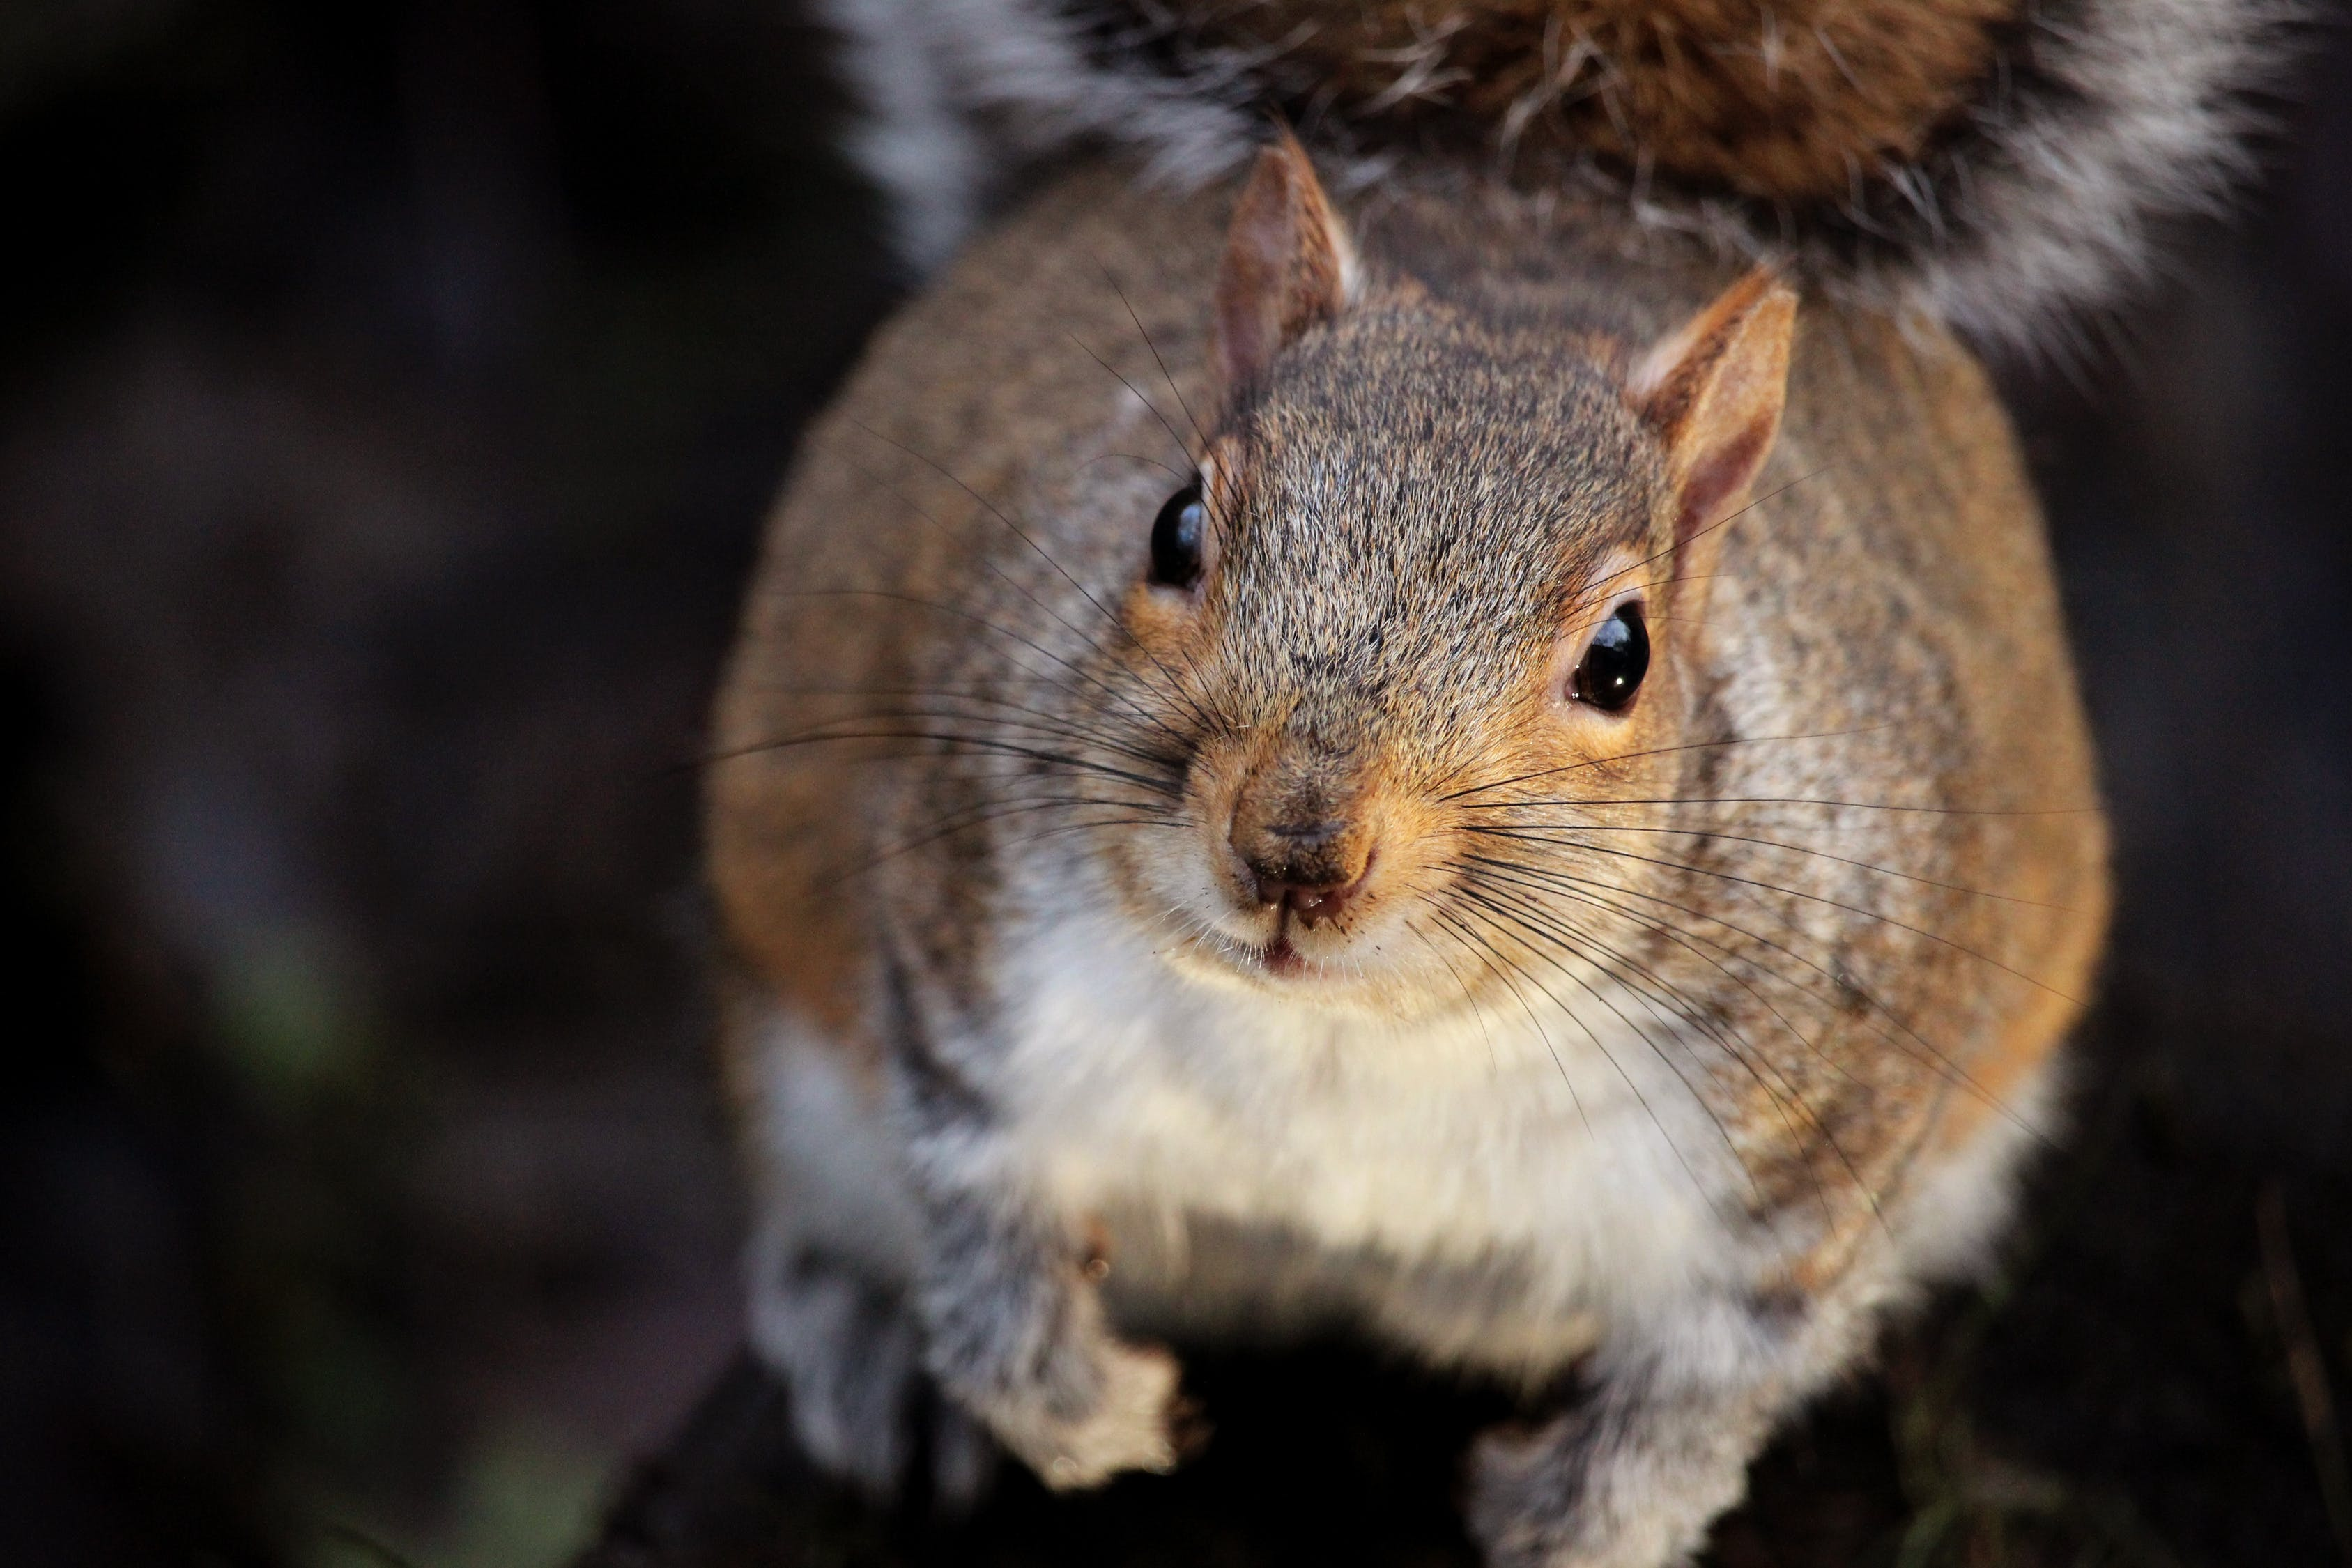 Squirrel caught on camera stealing two slices of pizza from box left on porch